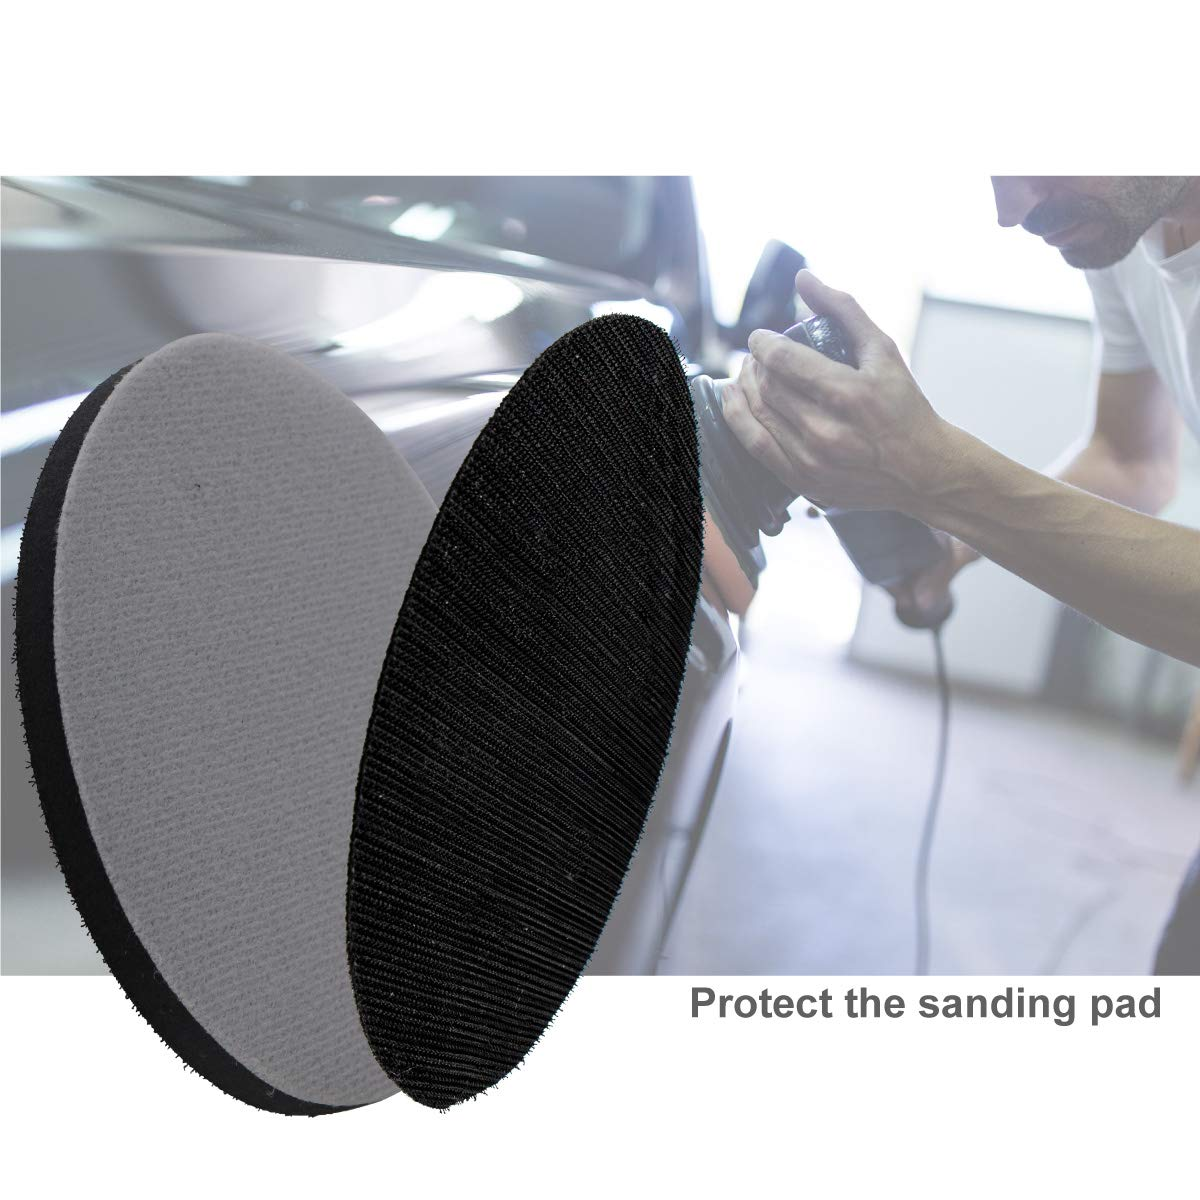 5 Inch Interface Pad Soft Sponge Sanding Disc Backing Pads Hook and Loop Attachment Power Tools Accessories 125mm by VIBRATITE